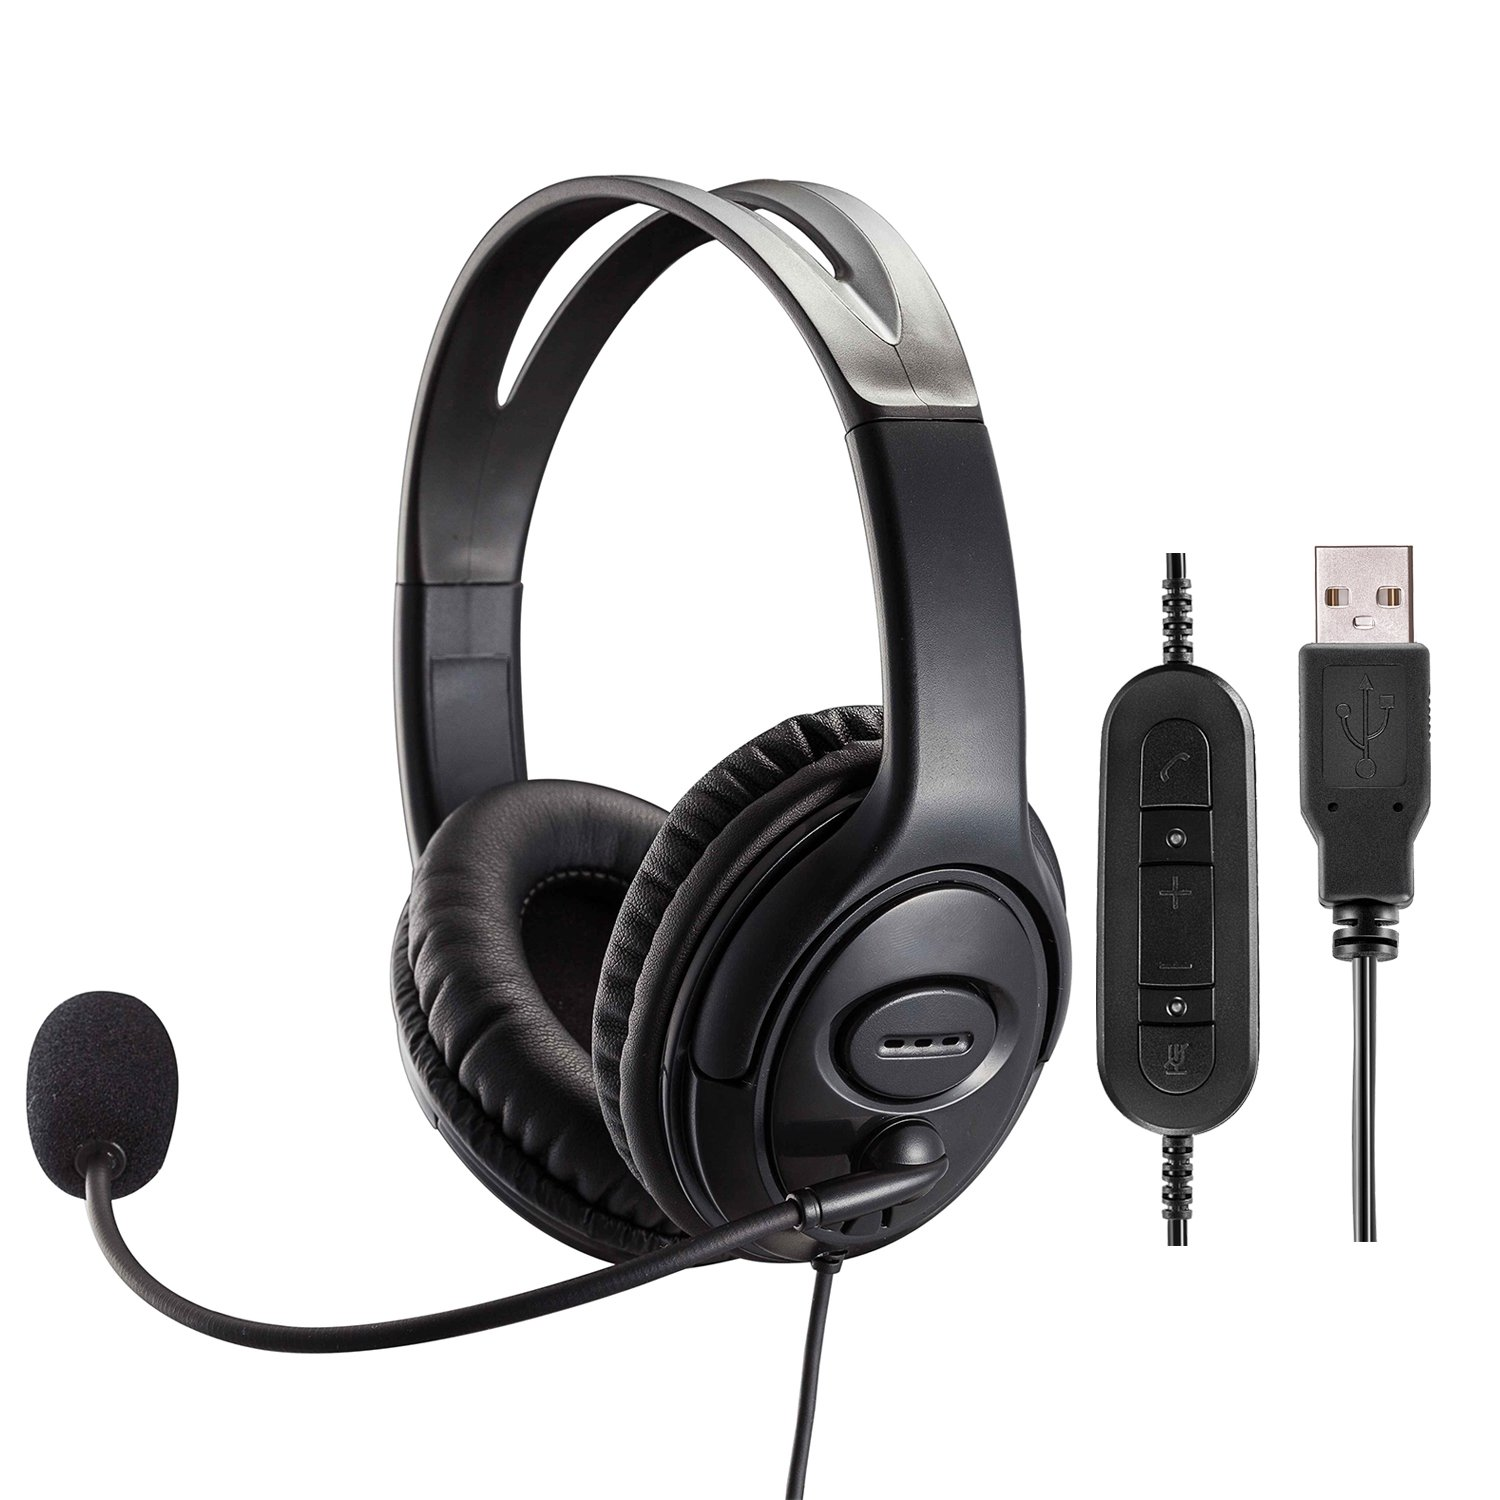 Dual Ear USB Headset with Microphone Noise Cancelling for Skype Business Microsoft Lync Education Speech Recognition